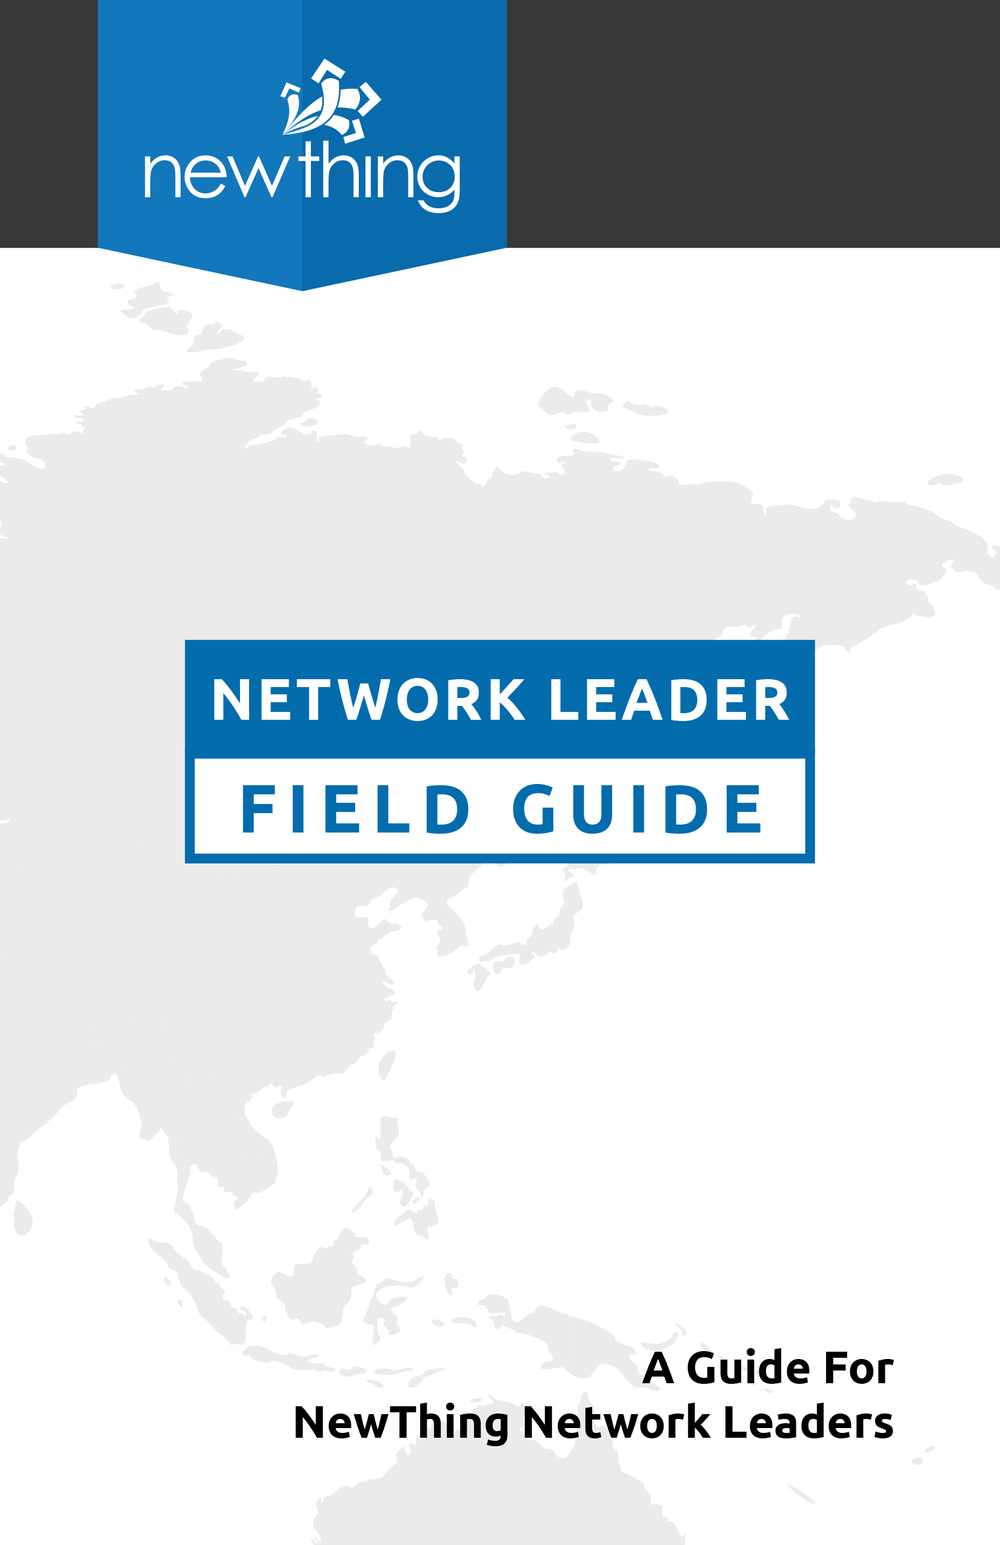 Network Leader Field Guide